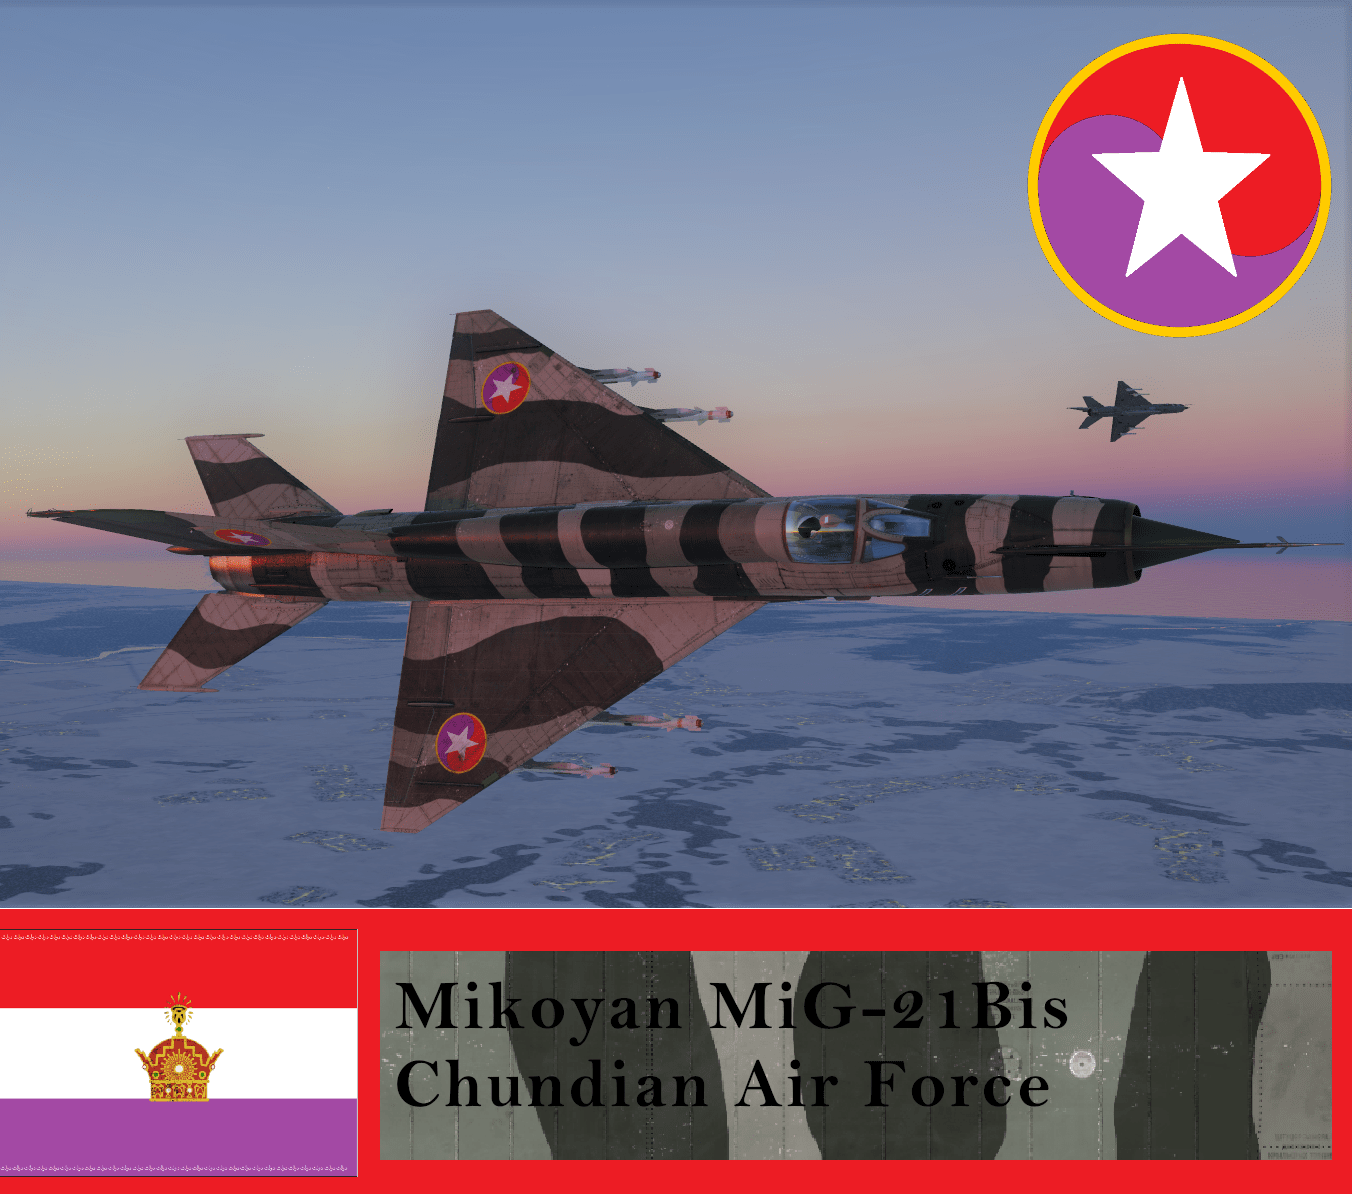 MiG-21Bis Chundian Air Force (Fictional)